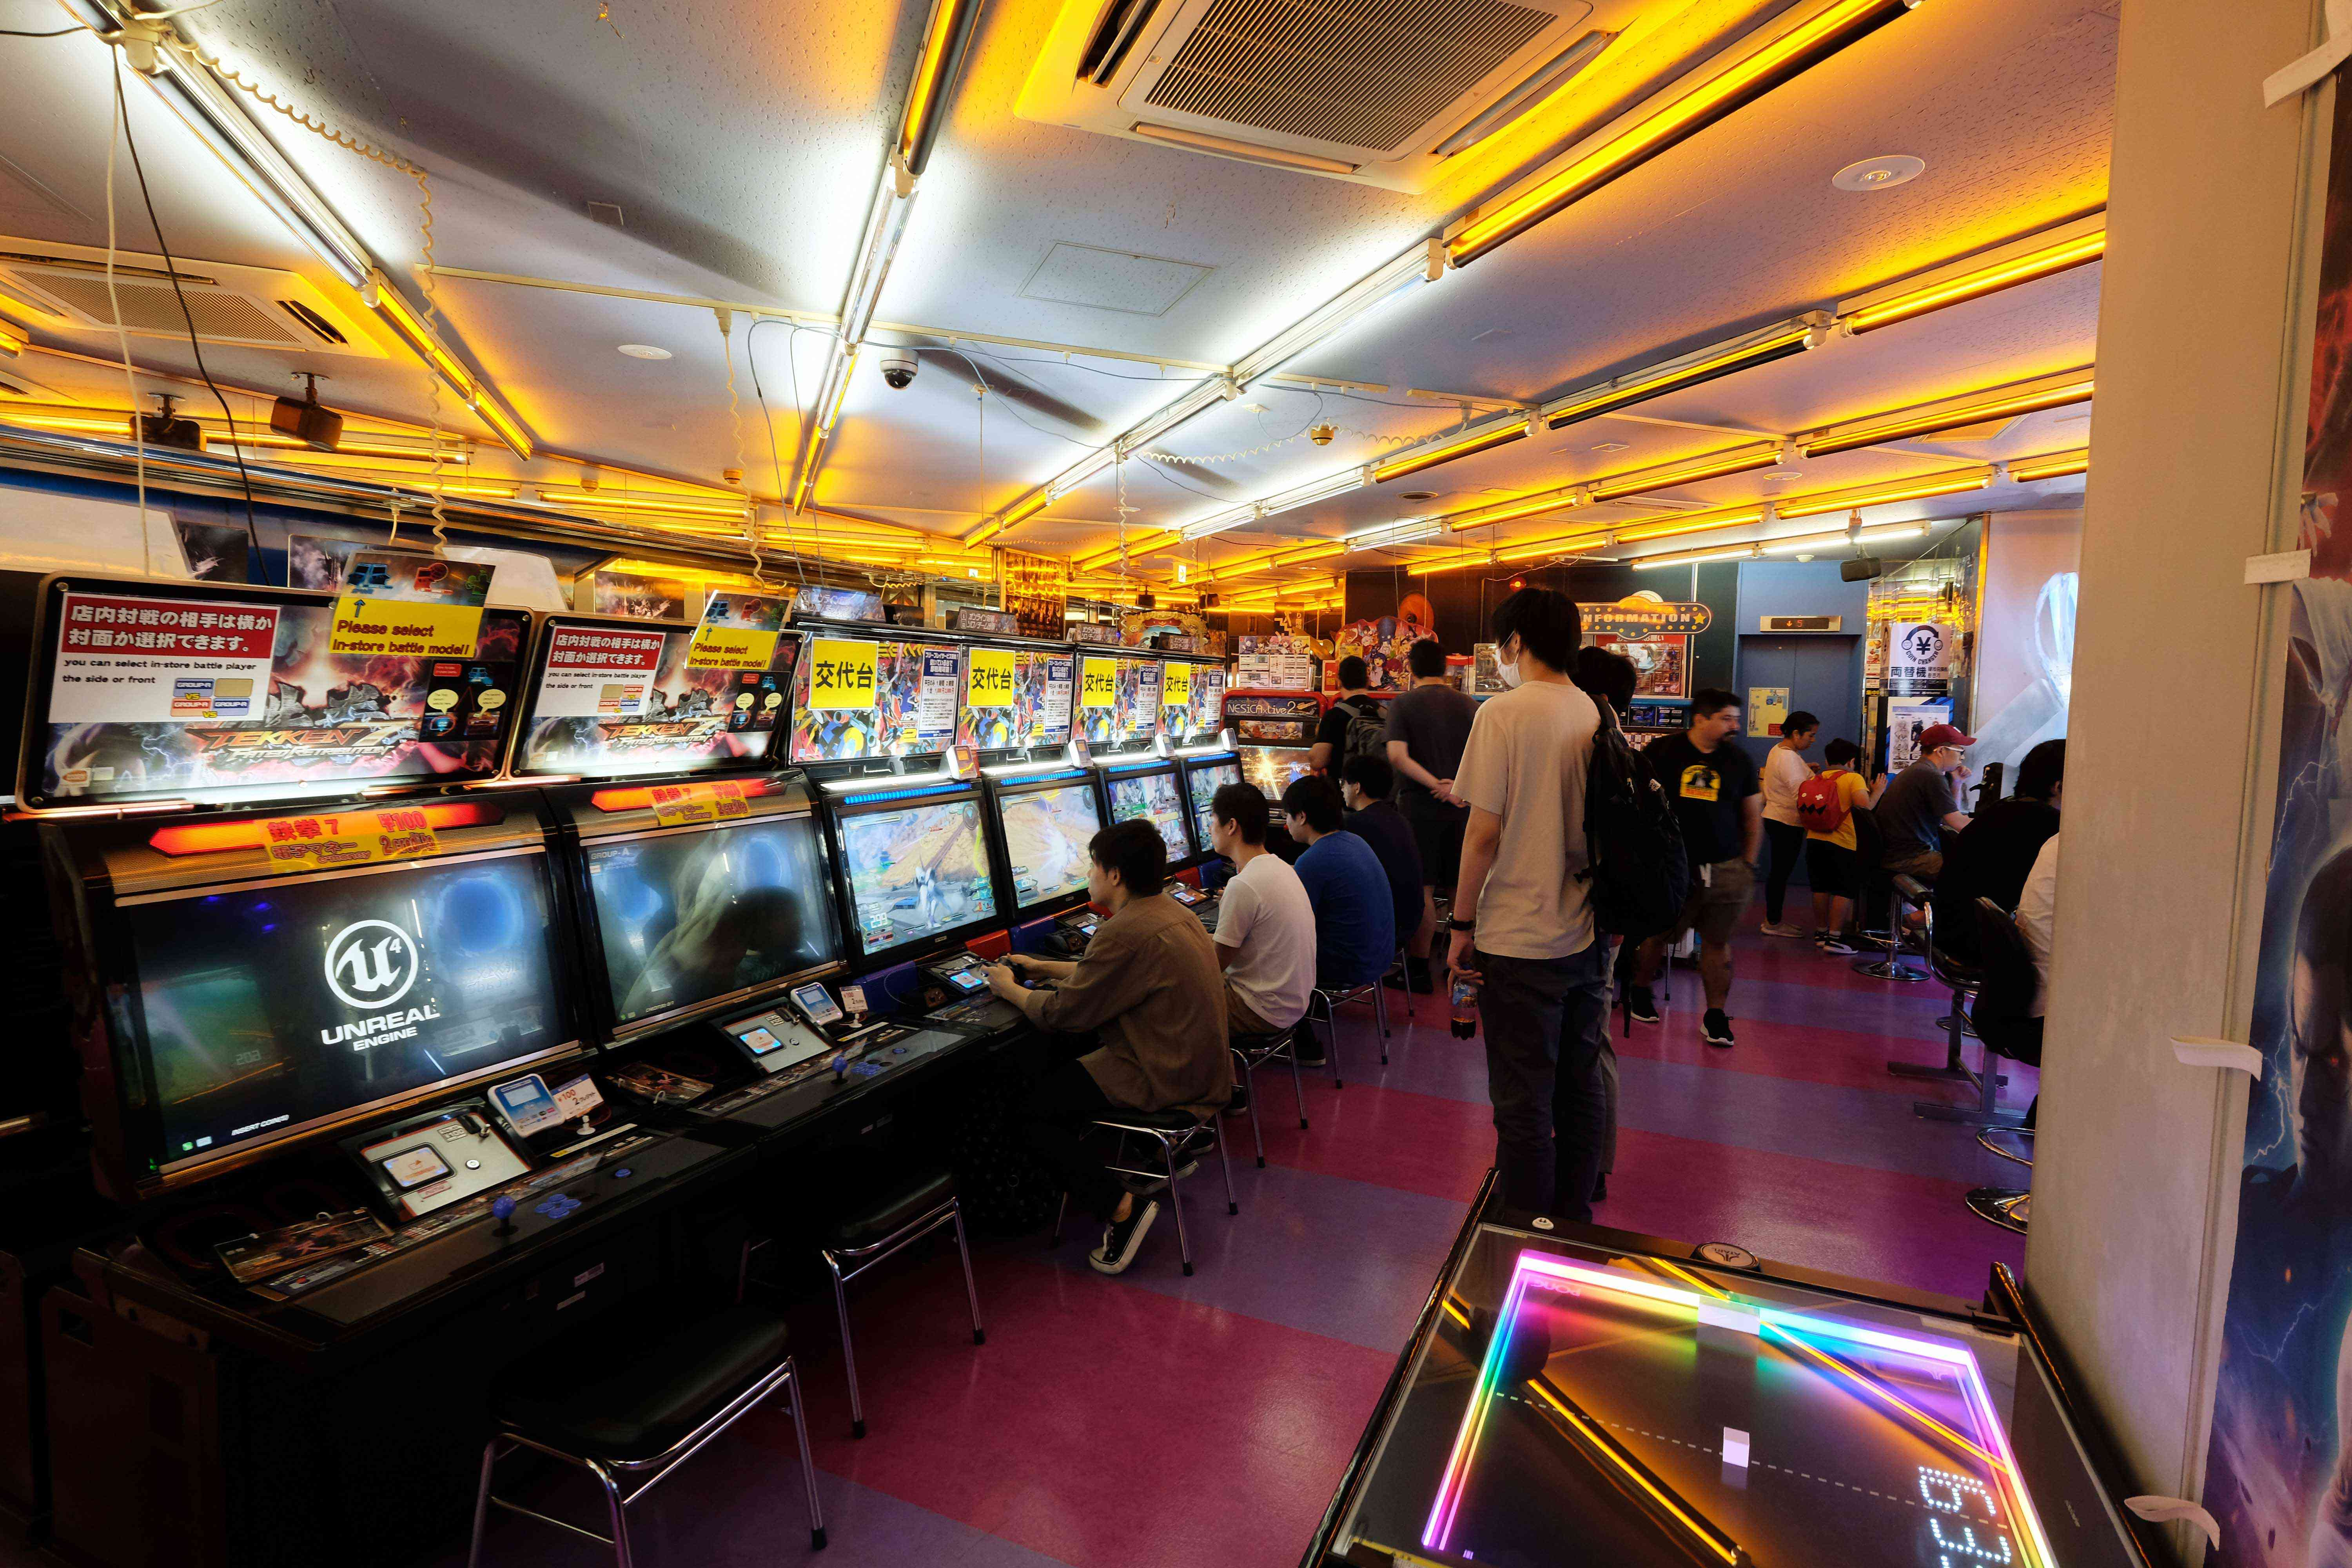 People playing games inside a large arcade